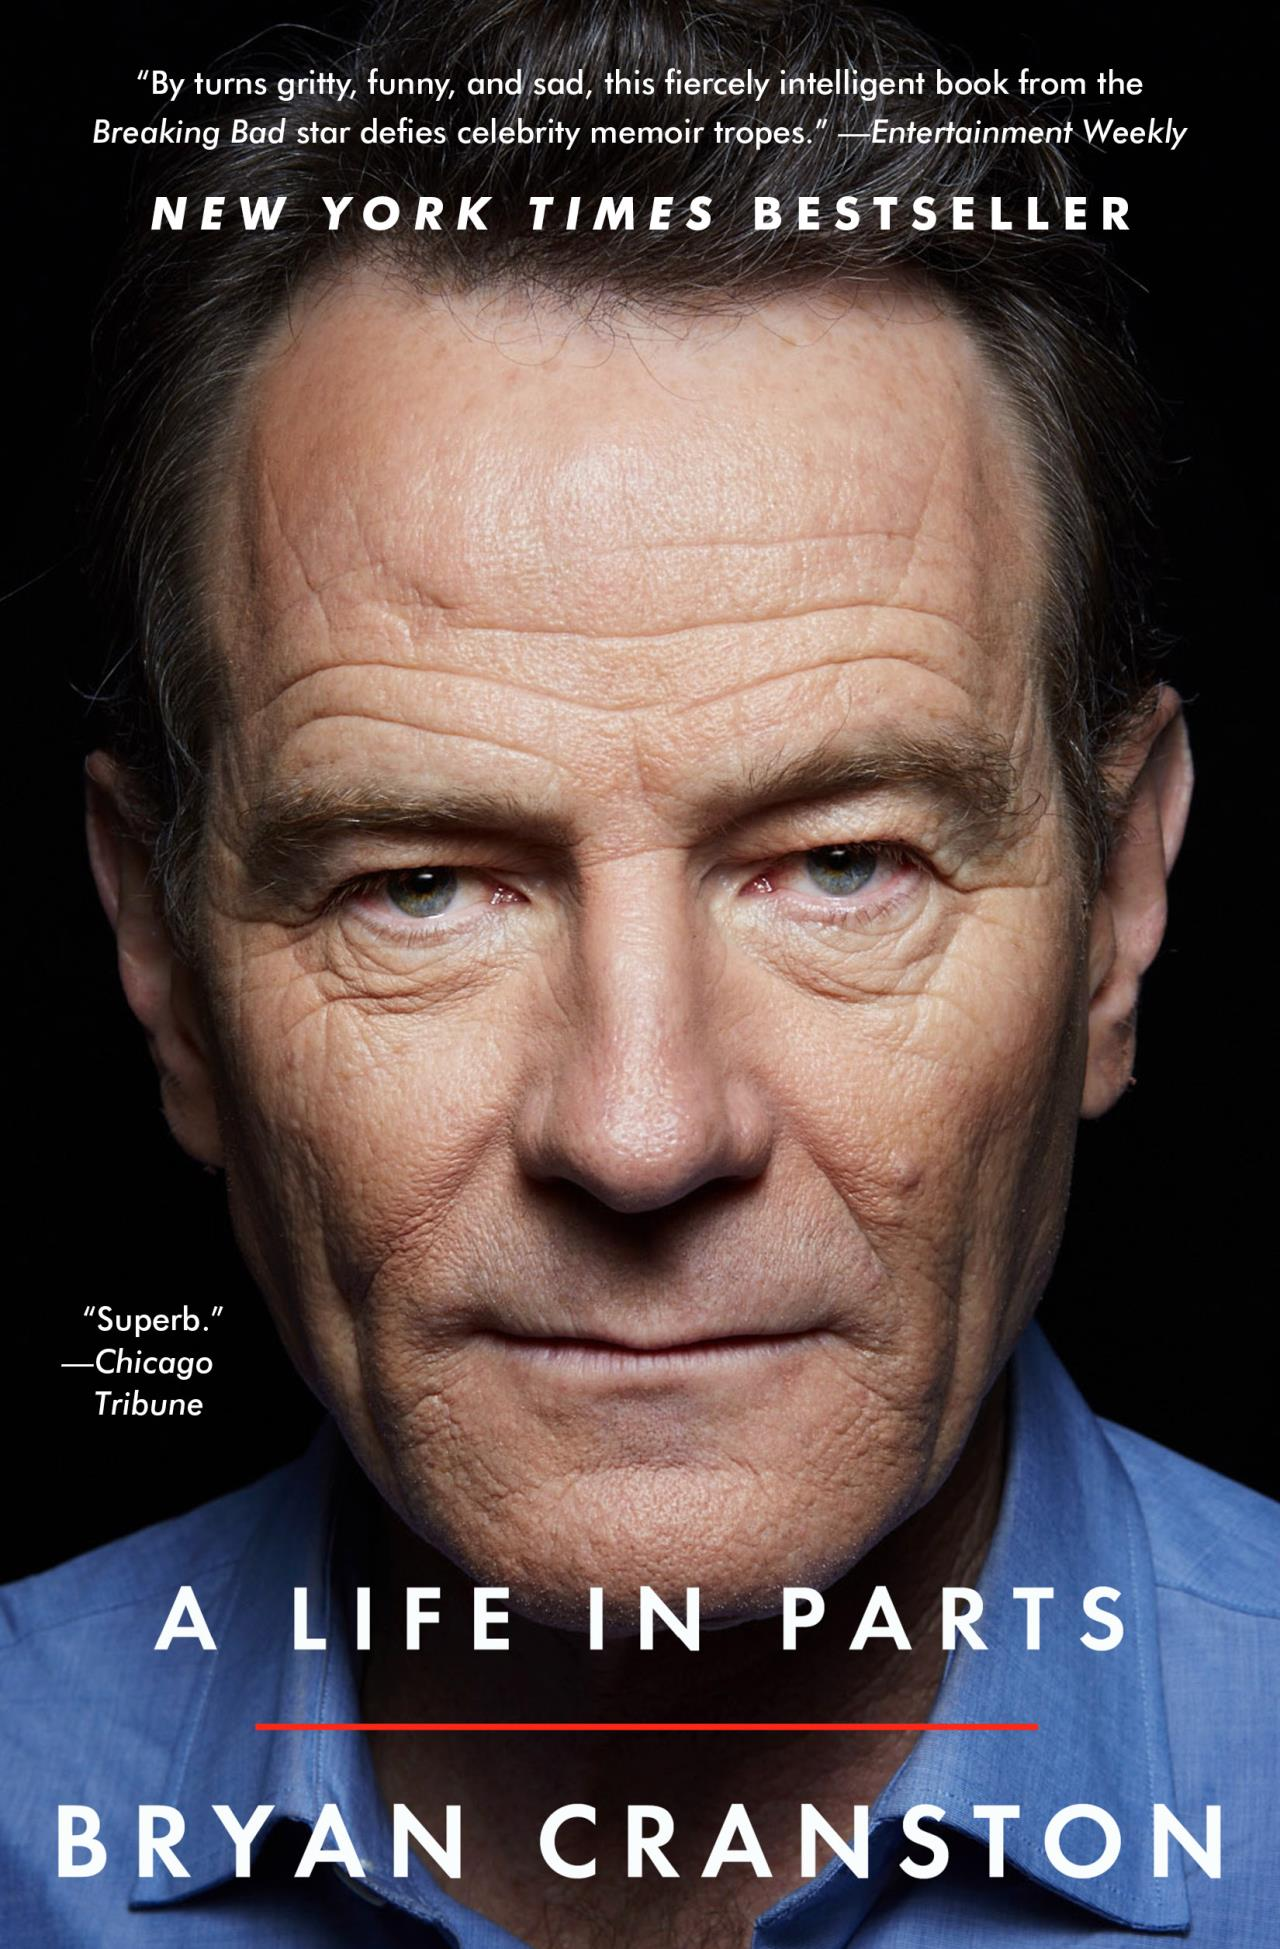 A Life in Parts pb by Bryan Cranston